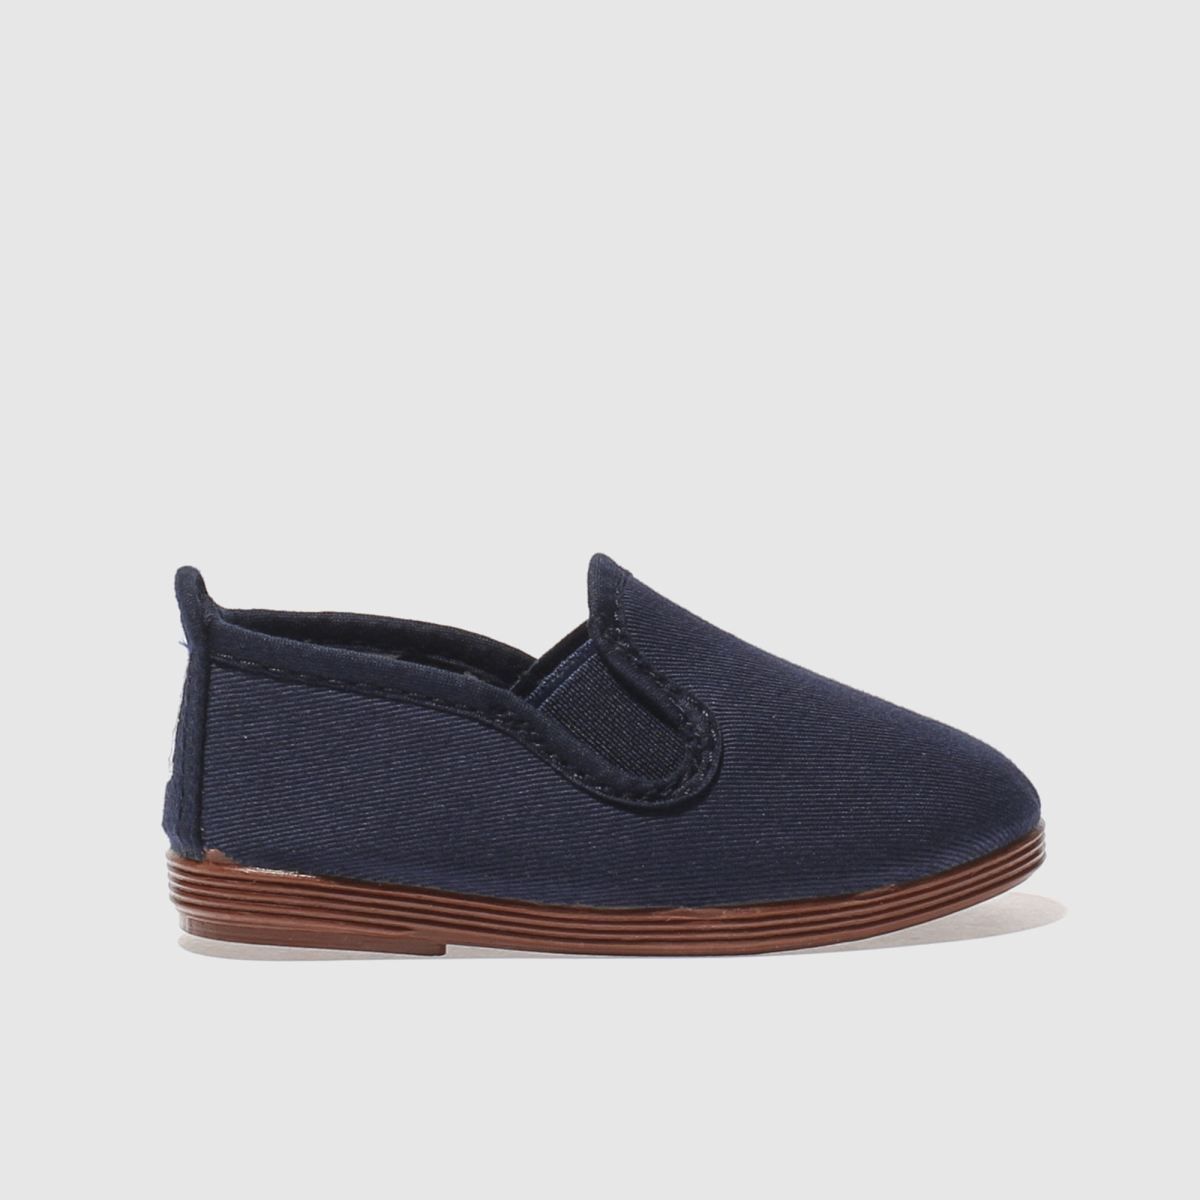 Flossy Flossy Navy Pamplona Boys Toddler Shoes